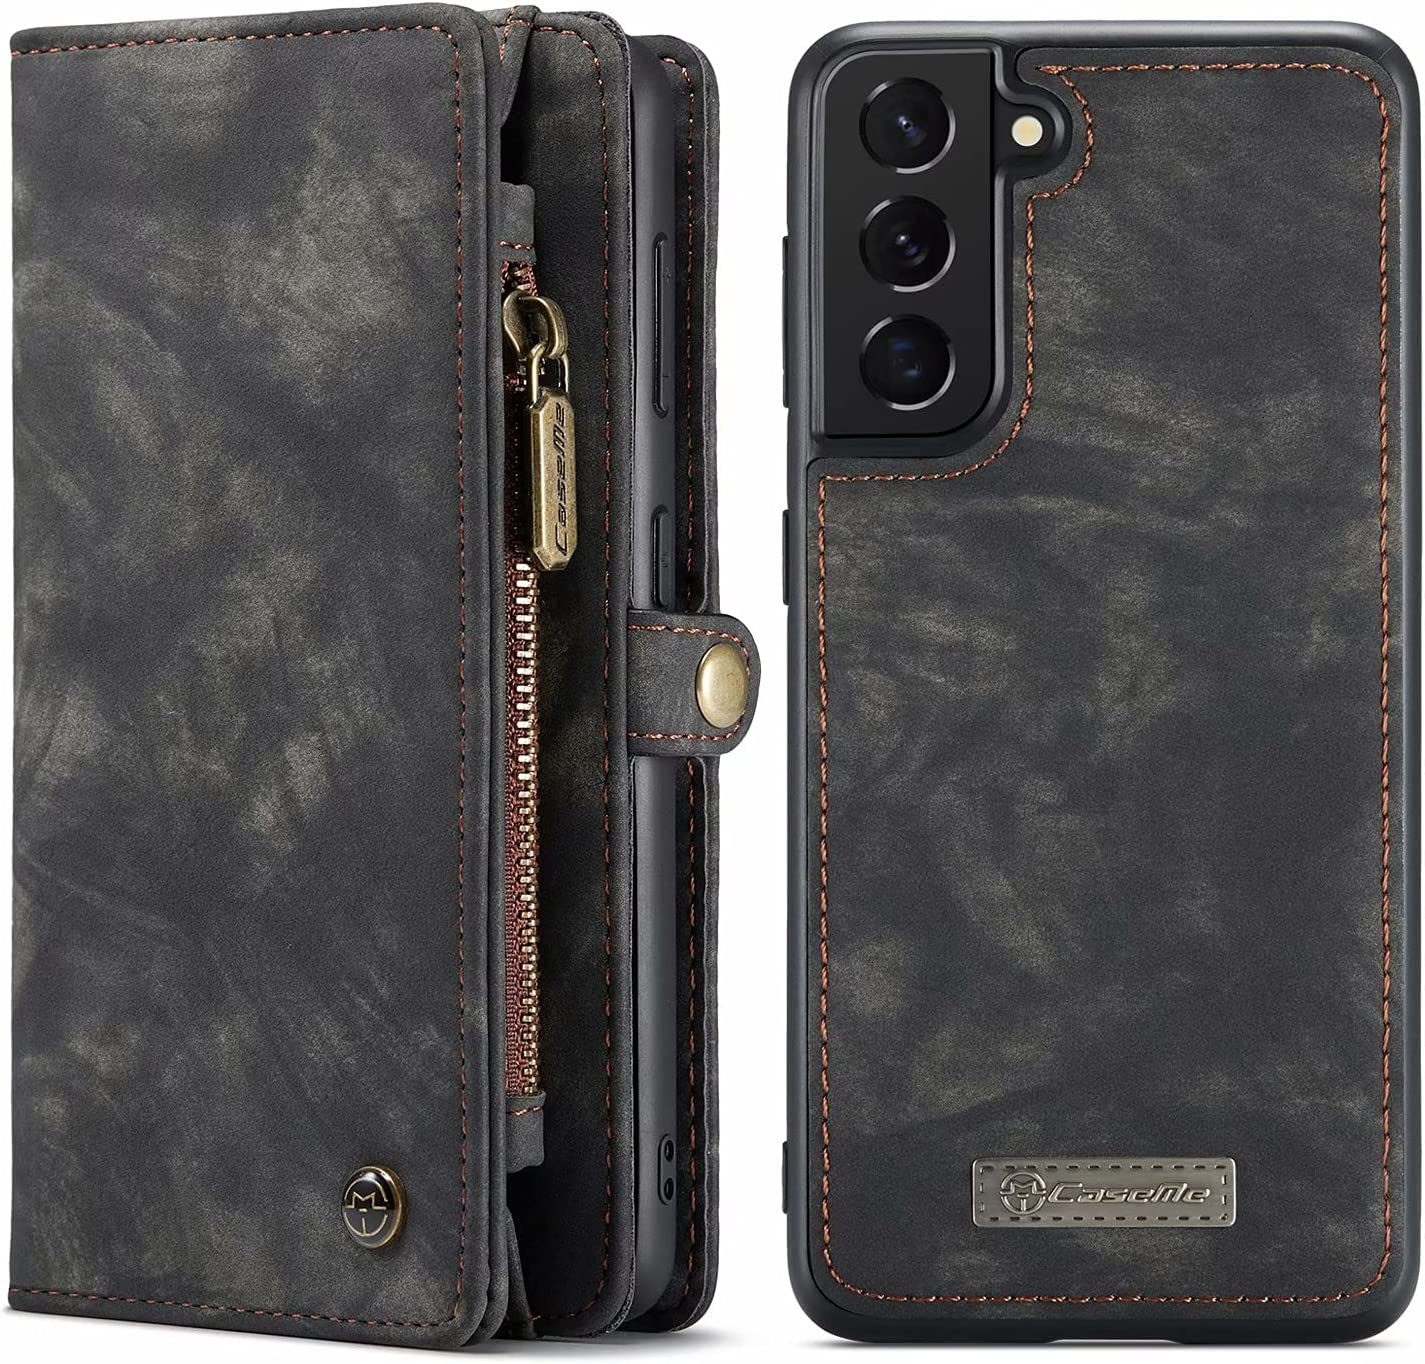 Arlgseln Case for Samsung Galaxy S21 FE, Genuine Leather Wallet Detachable Magnetic Cell Phone Cover Zipper Purse RFID Blocking Card Slot Holster for Samsung Galaxy S21 FE 2021 (Black)